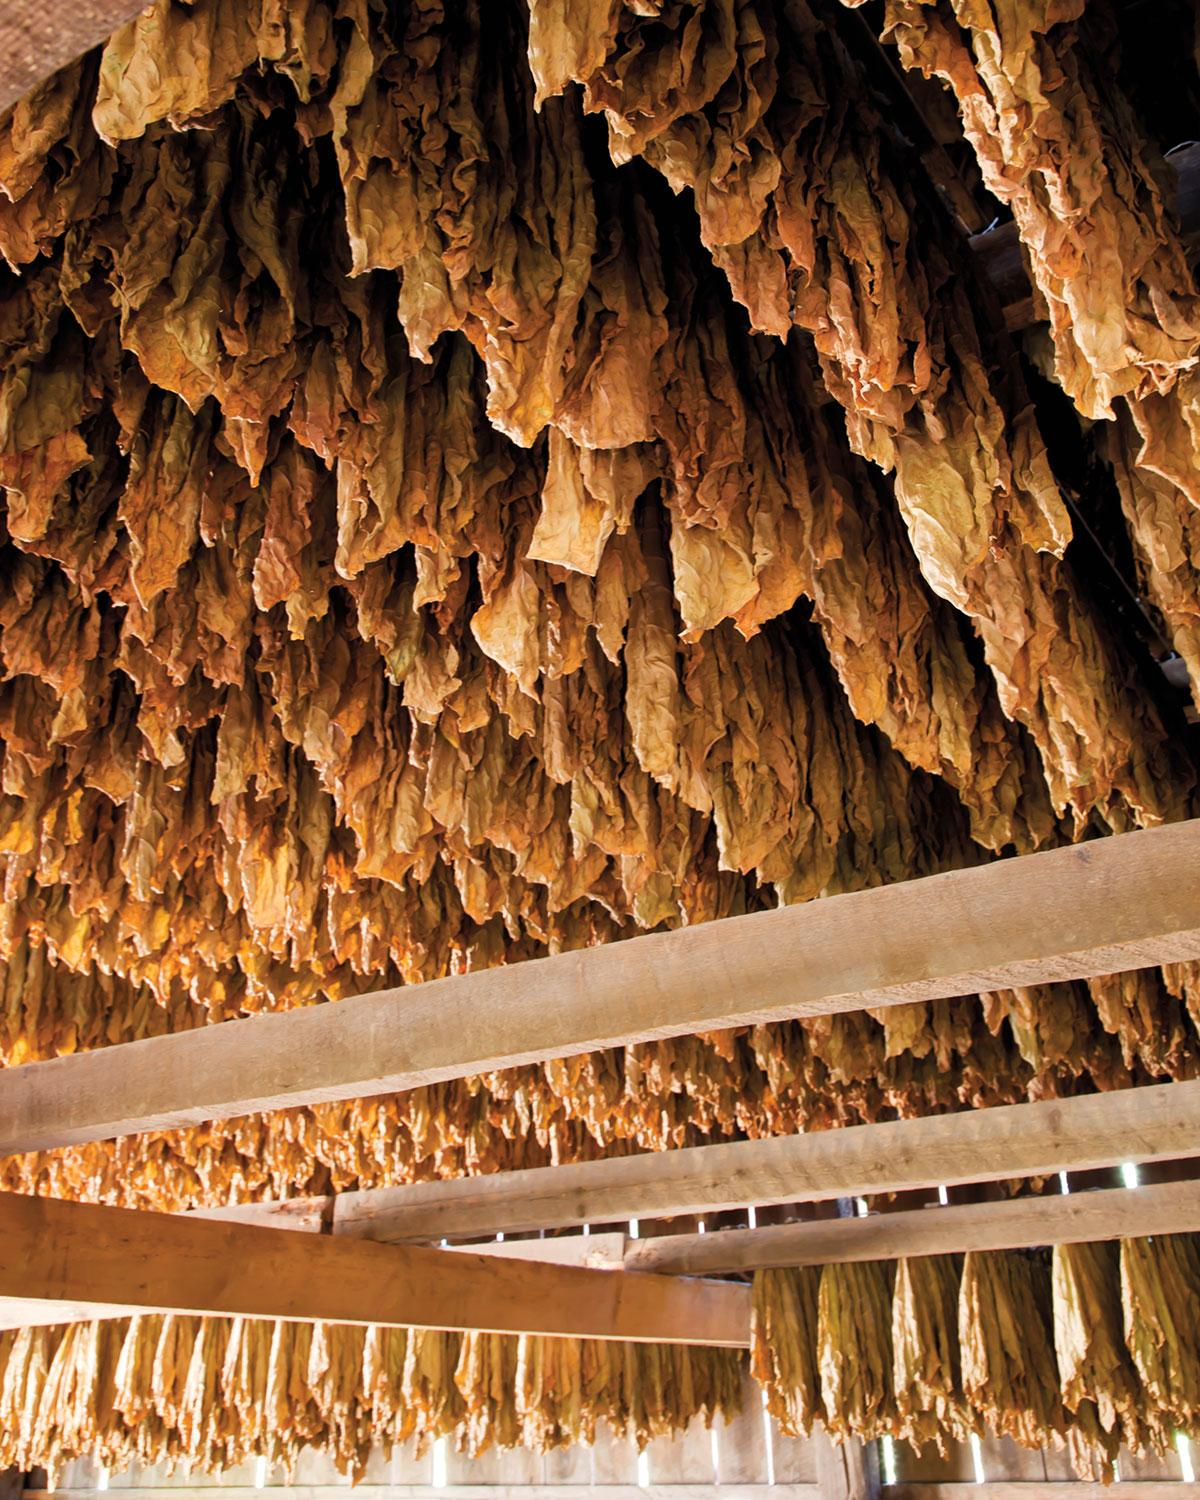 A barn full of cured Connecticut shade wrapper.